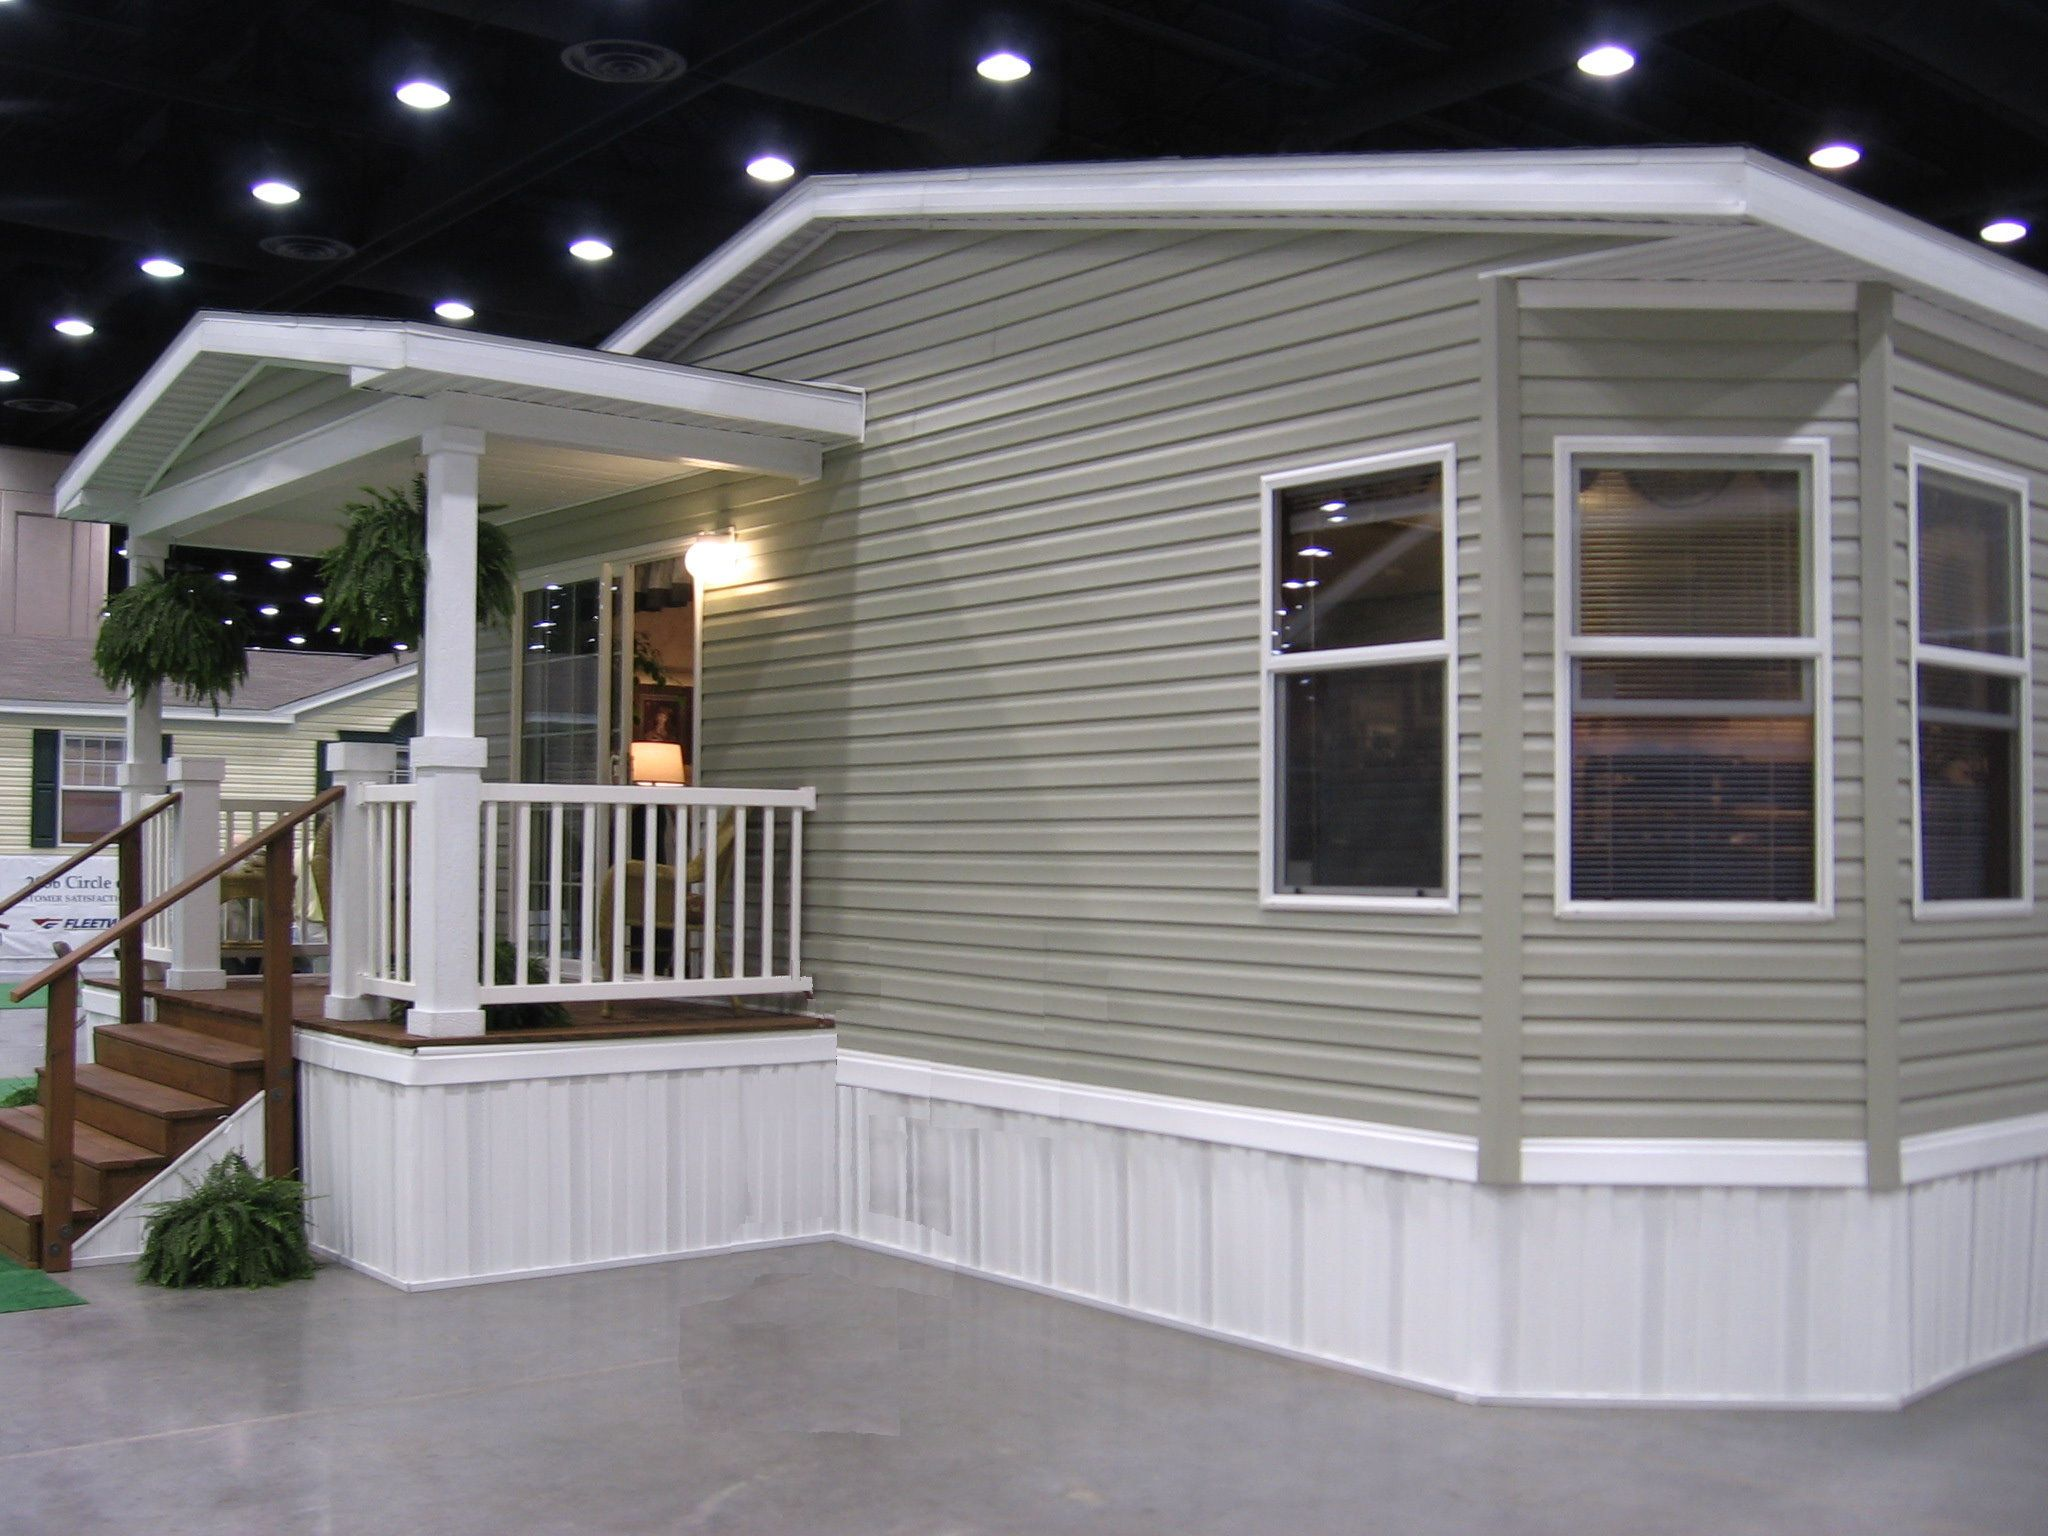 Superieur Mobile Home Deck Ideas | PORCH DESIGNS FOR MOBILE HOMES « Home Plans U0026 Home  Design